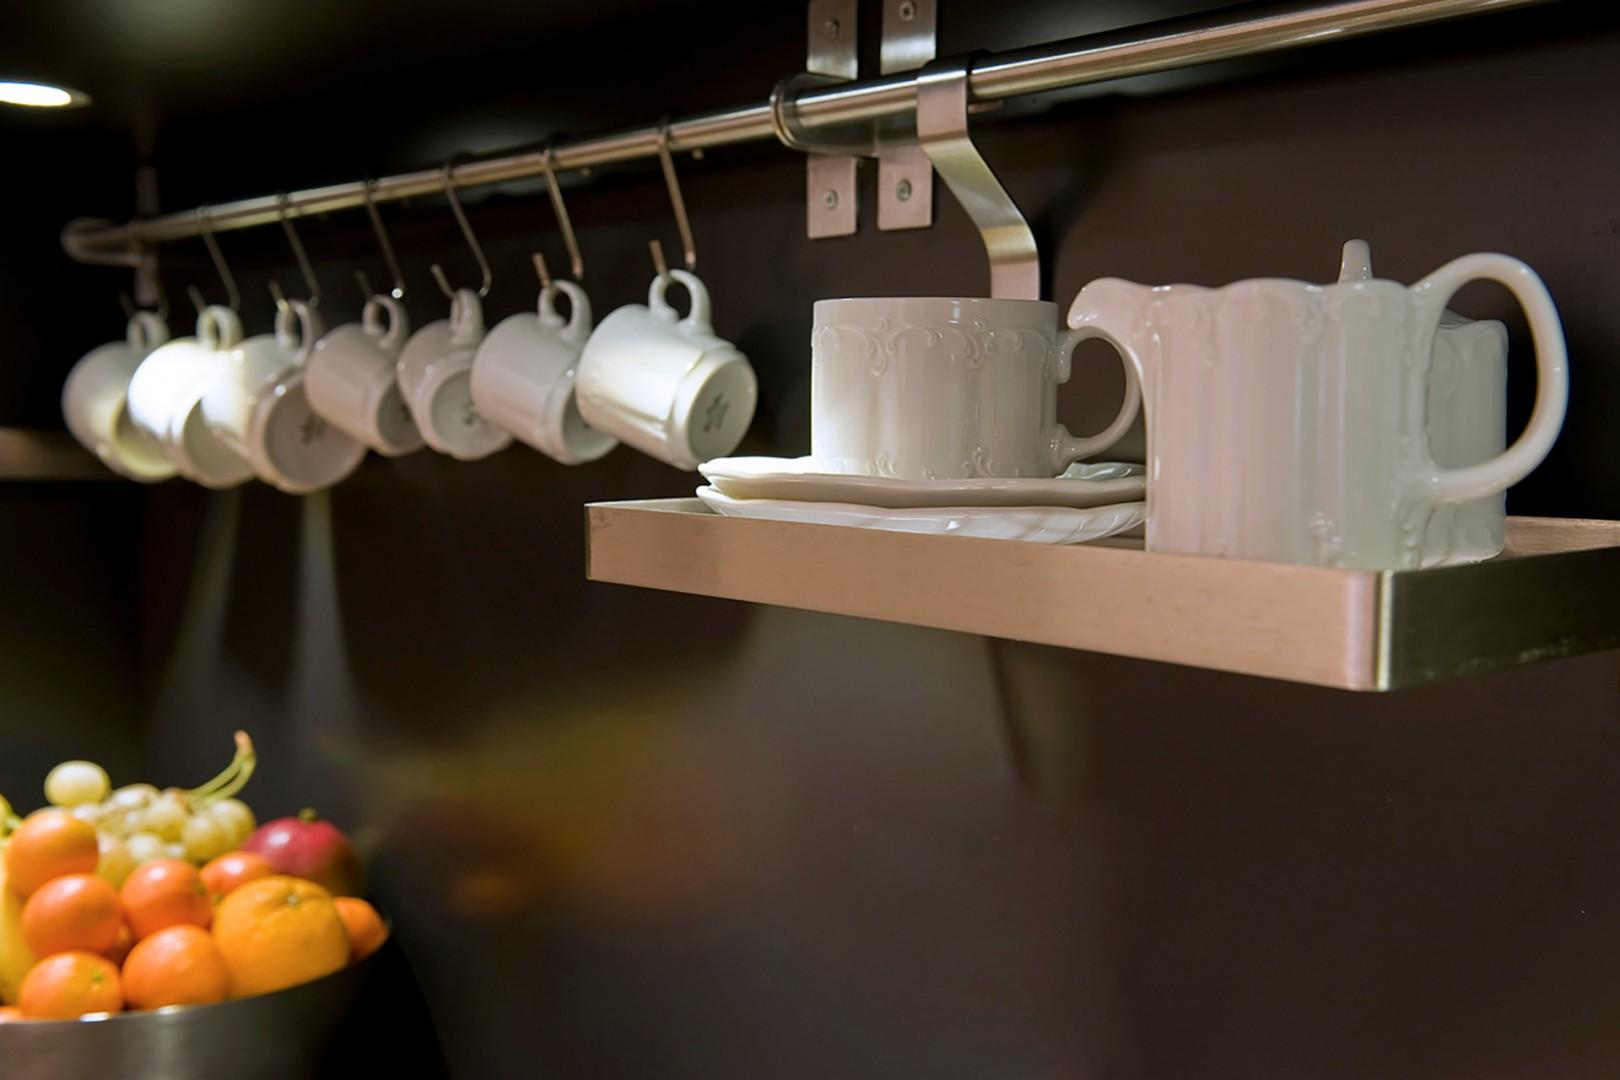 Kitchen has a Nespresso machine stocked with coffee capsules.